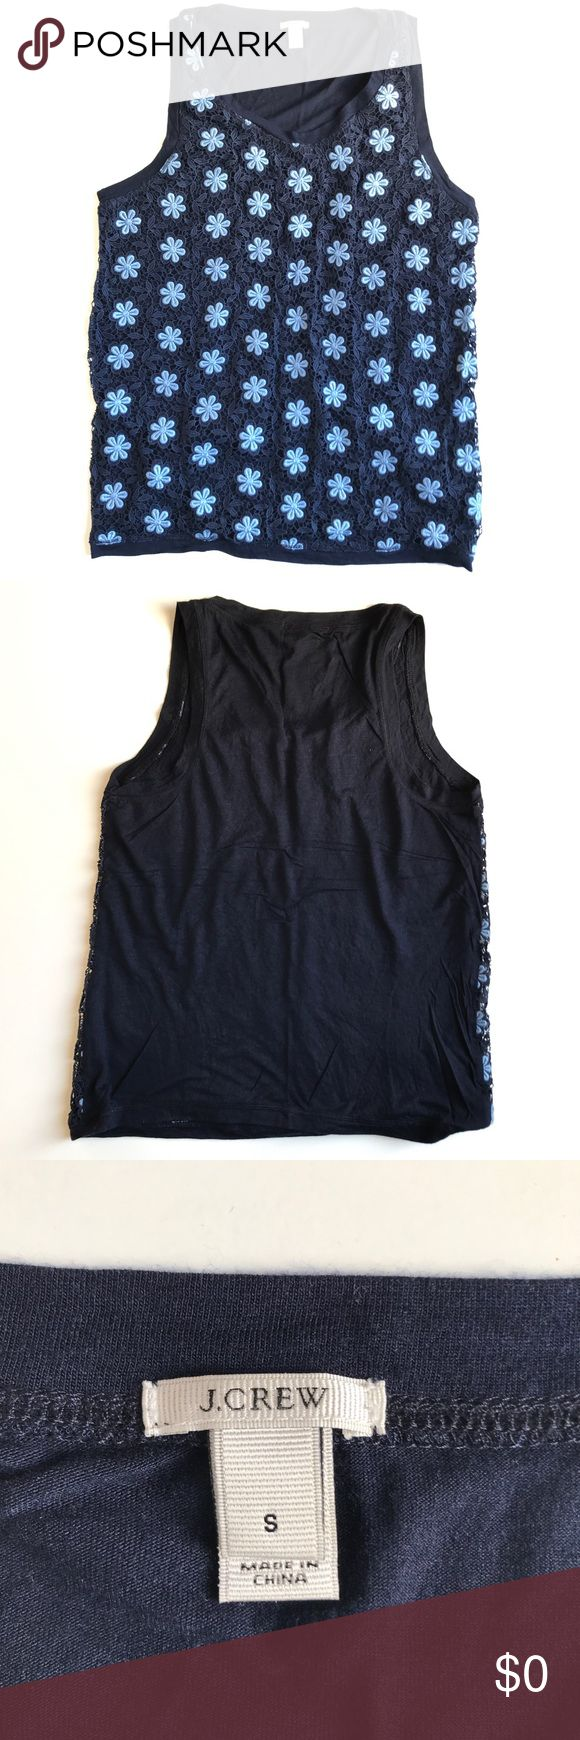 """J. Crew crochet lace tank. Navy blue J. Crew crochet lace tank. Size small. Measures 17"""" pit-to-pit and 23.5"""" long. Gently used condition. Sorry, no trades & I am unable to model. J. Crew Tops Tank Tops"""